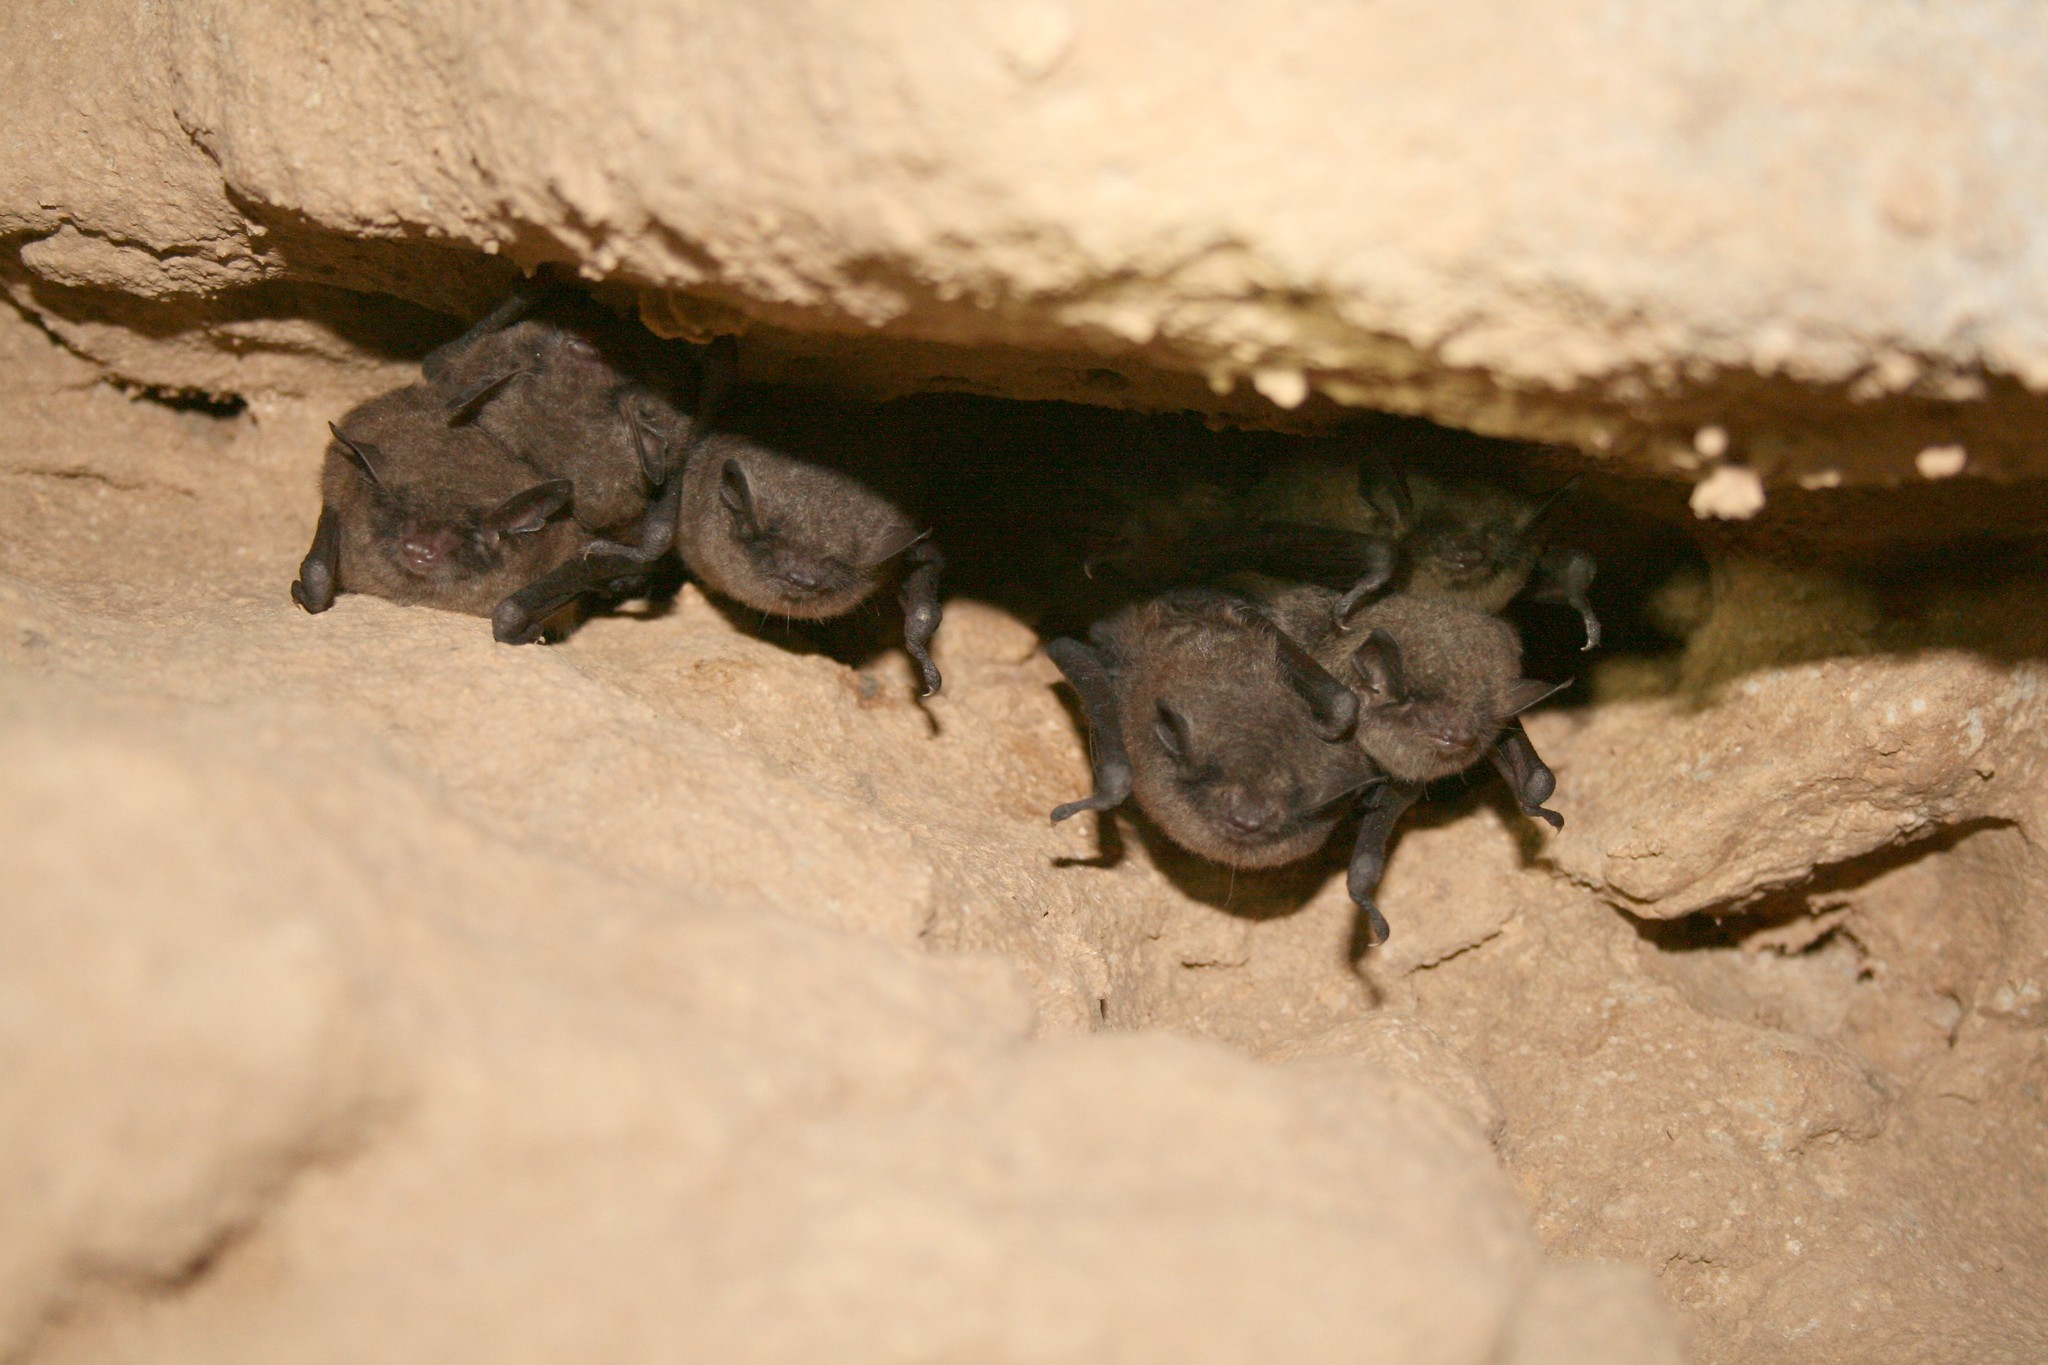 A group of Indiana bats are hibernating in a dark cave during winter months.